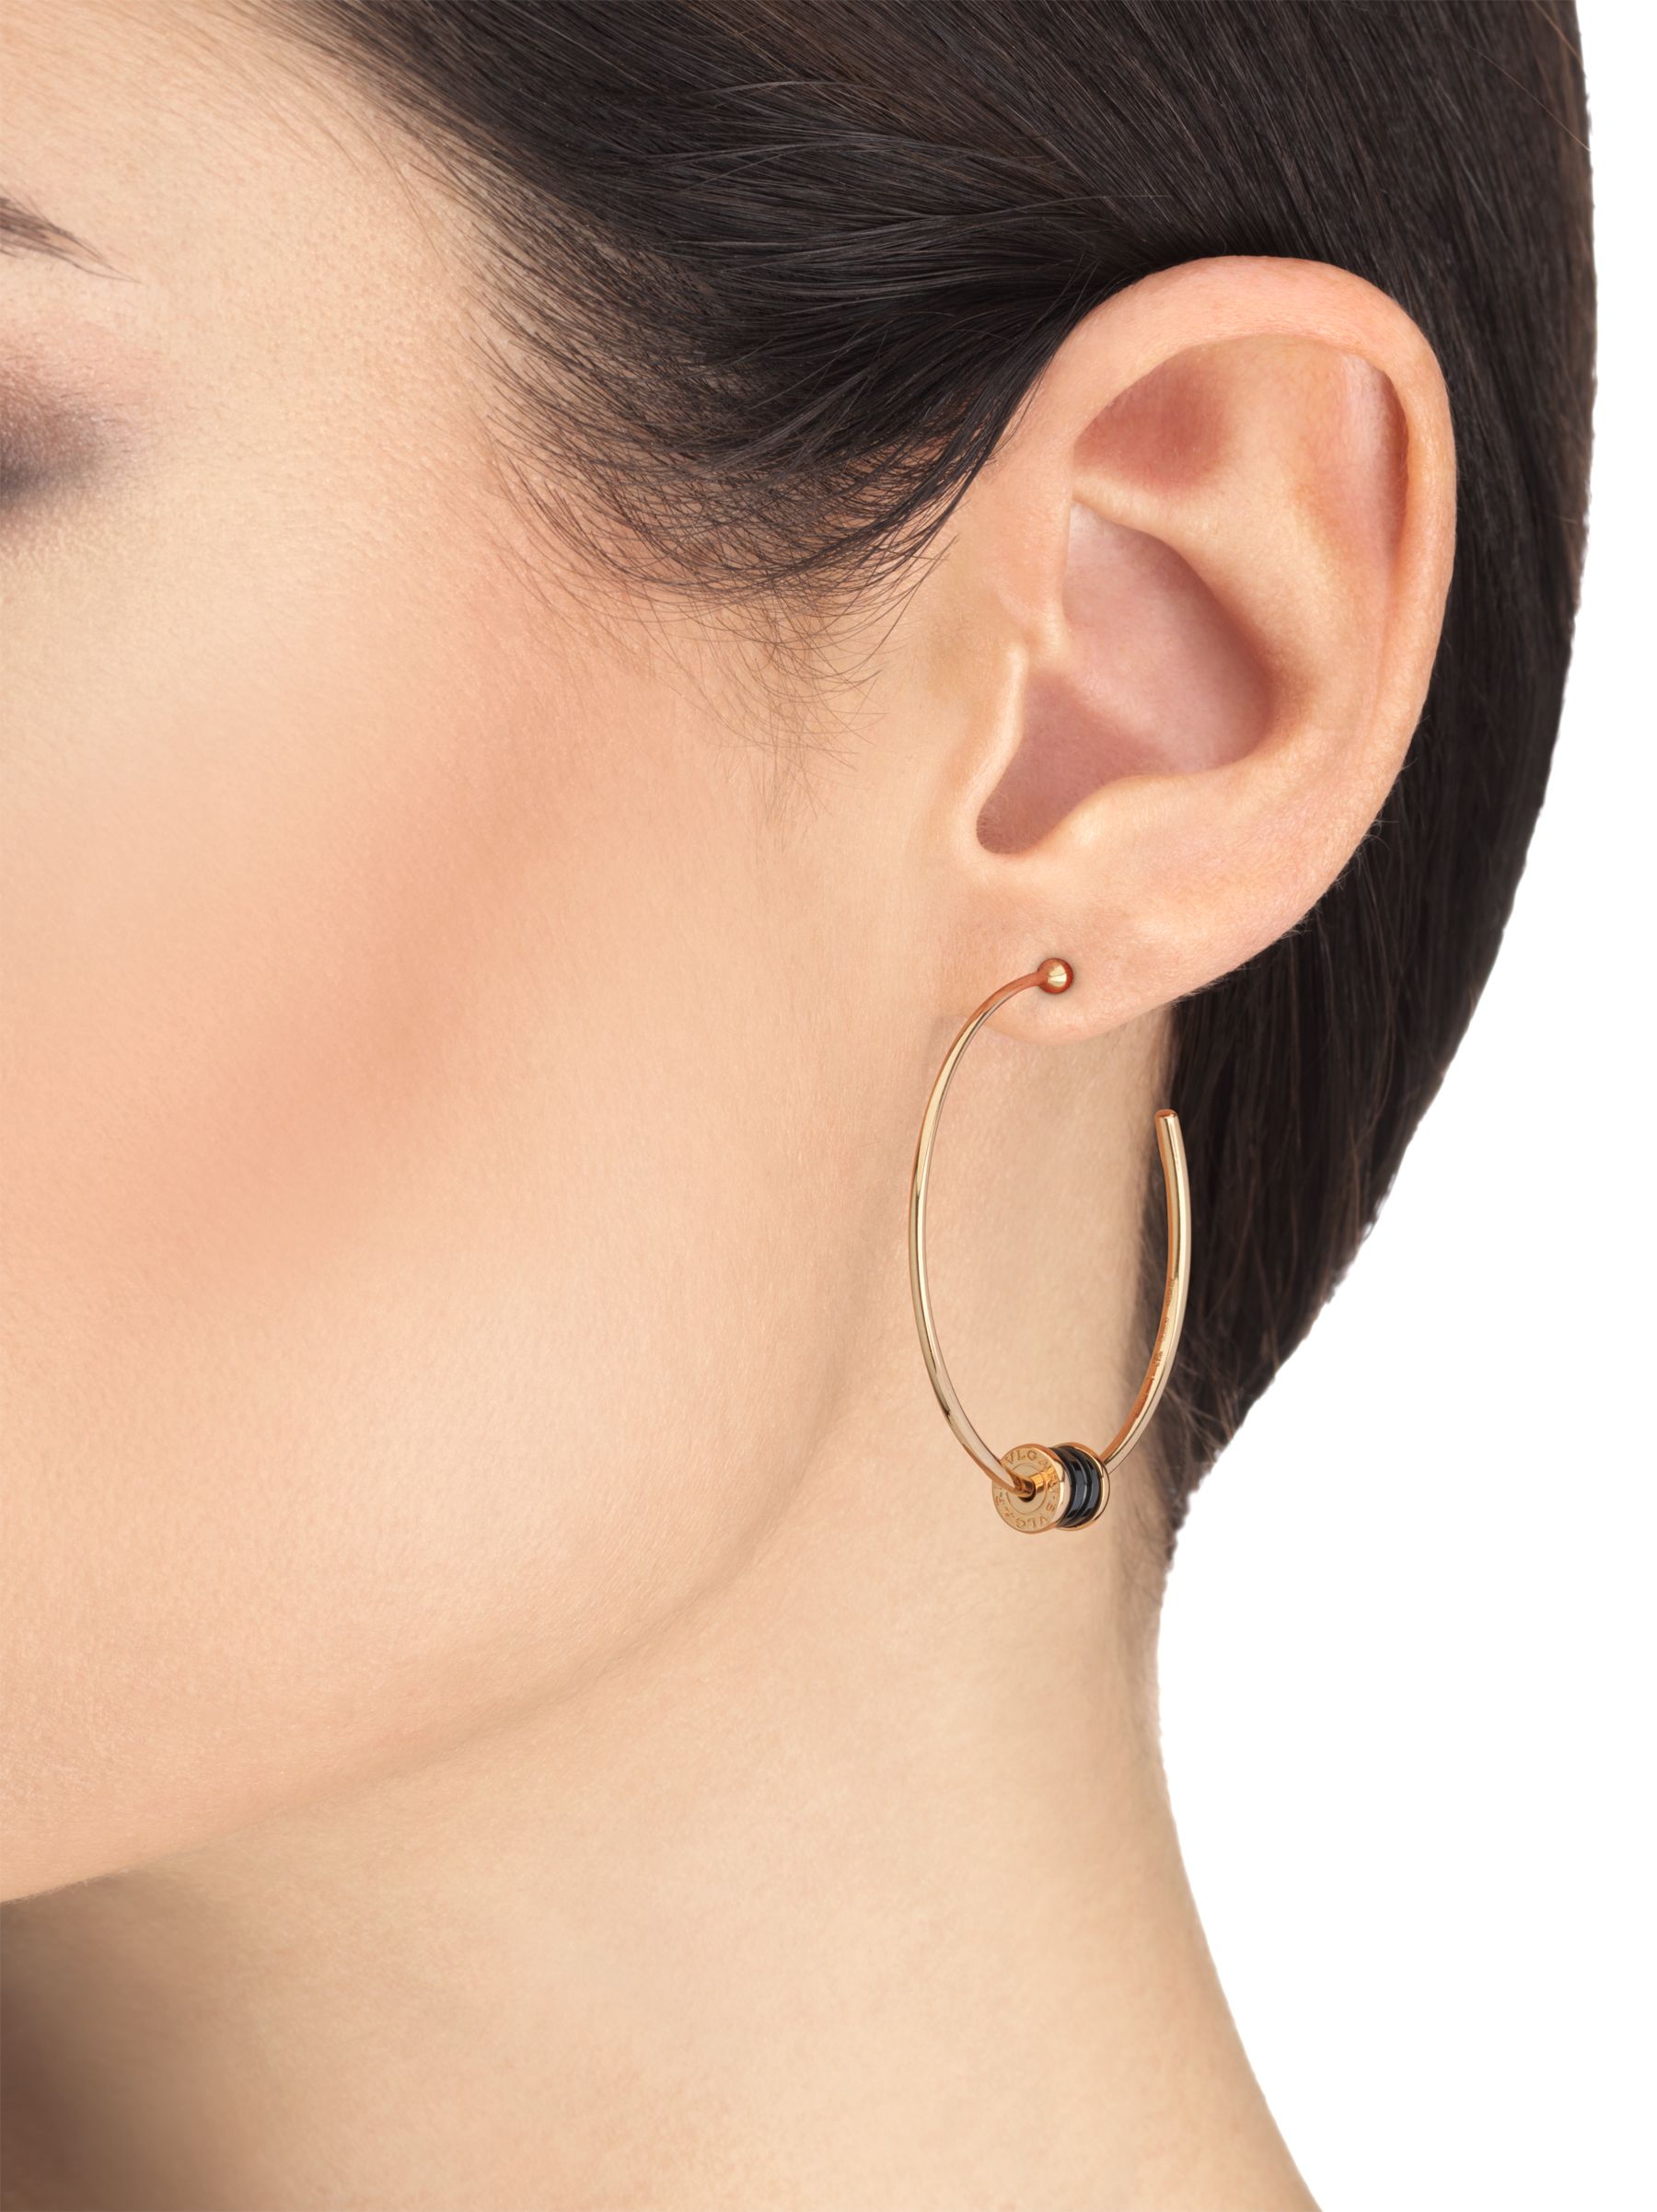 B.zero1 18 kt rose gold large hoop earrings set with black ceramic on the spiral 357222 image 3